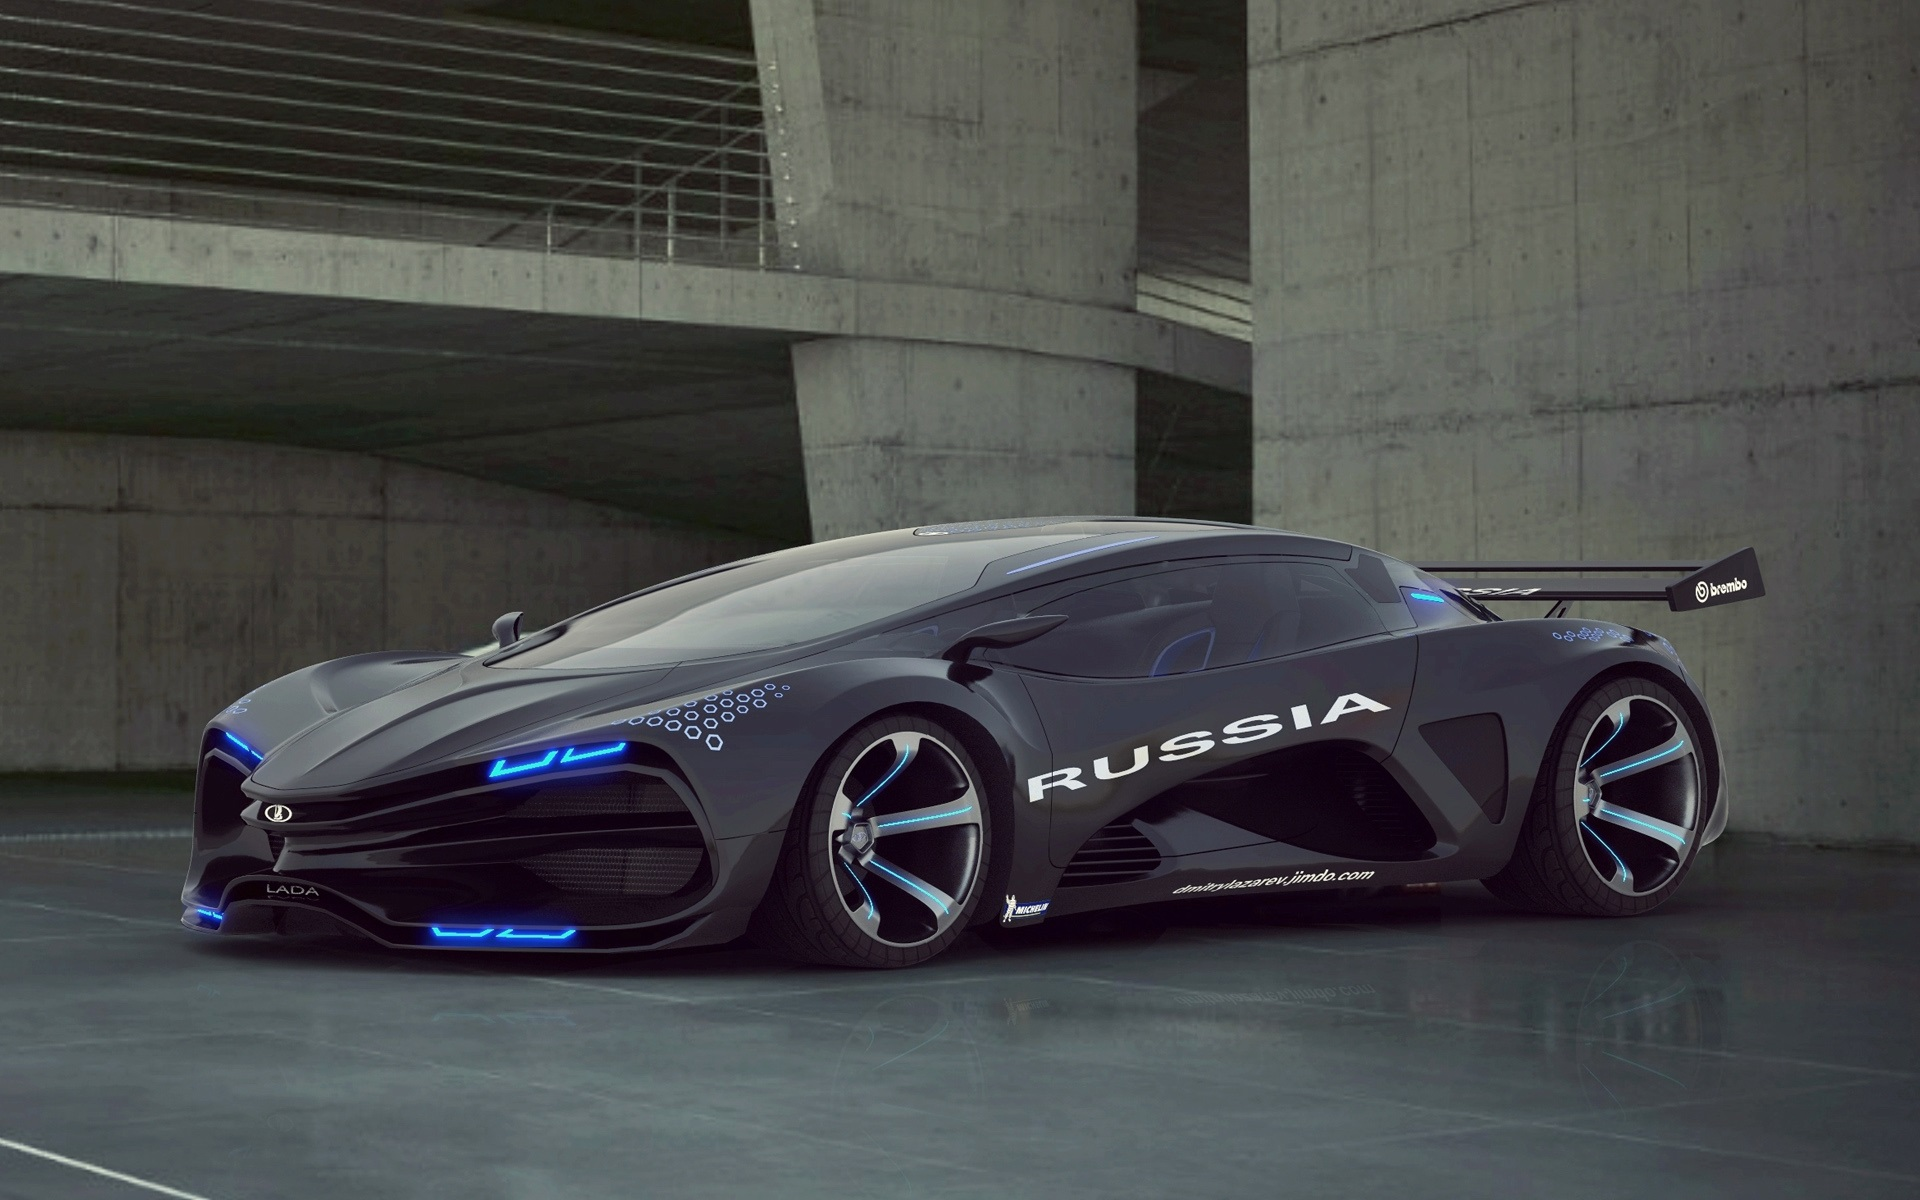 wallpaper lada raver raven concept car 1920x1200 hd picture, image